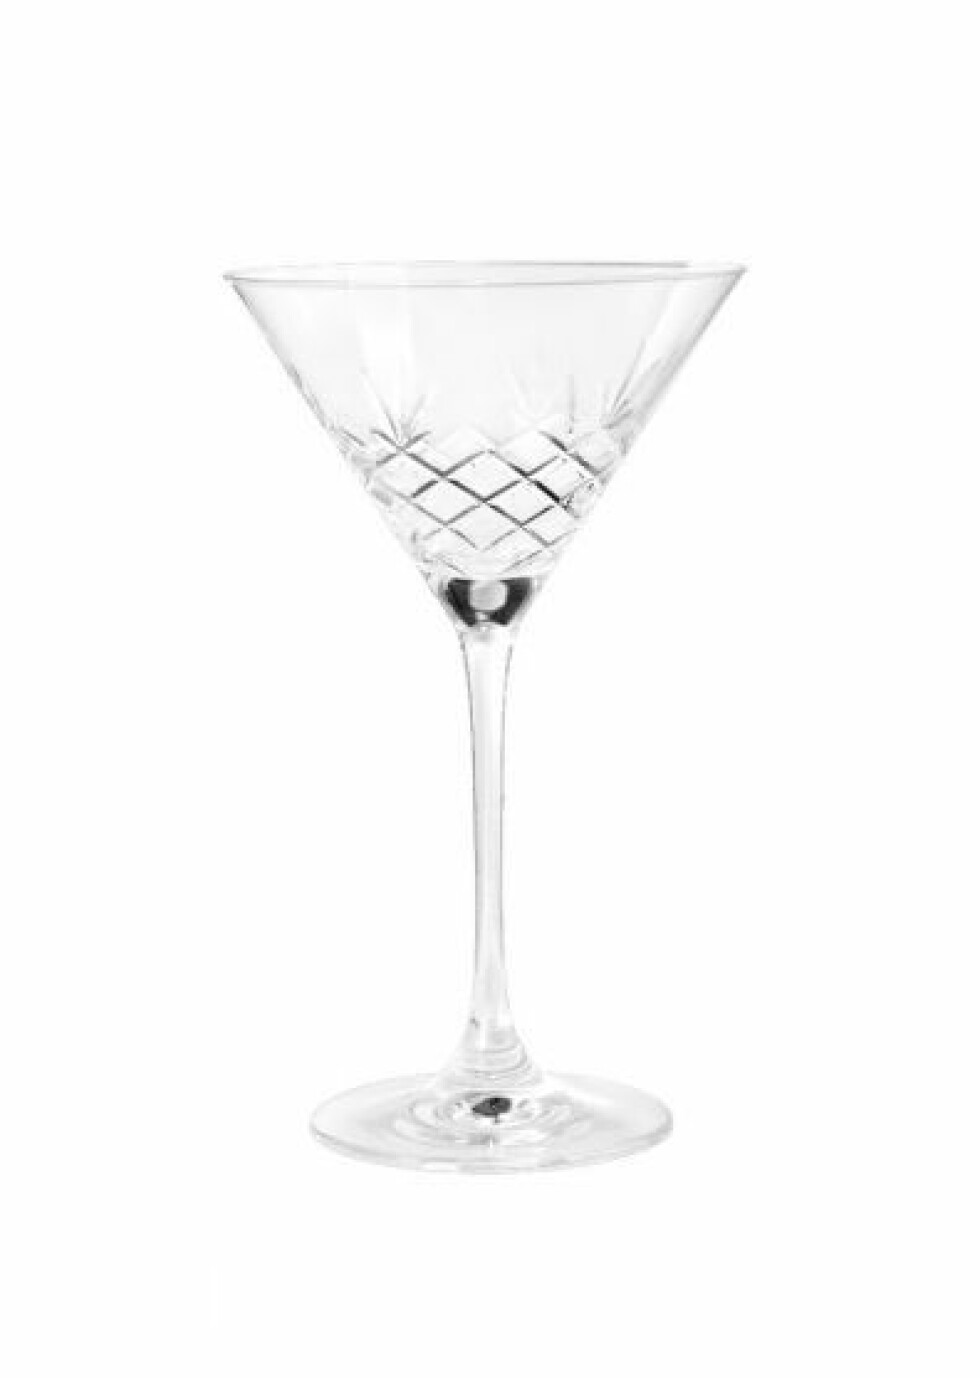 Cocktailglass fra Frederik Bagger |499,-| https://www.millaboutique.no/interior/duker/mat/crispy-cocktail-glass-2pk